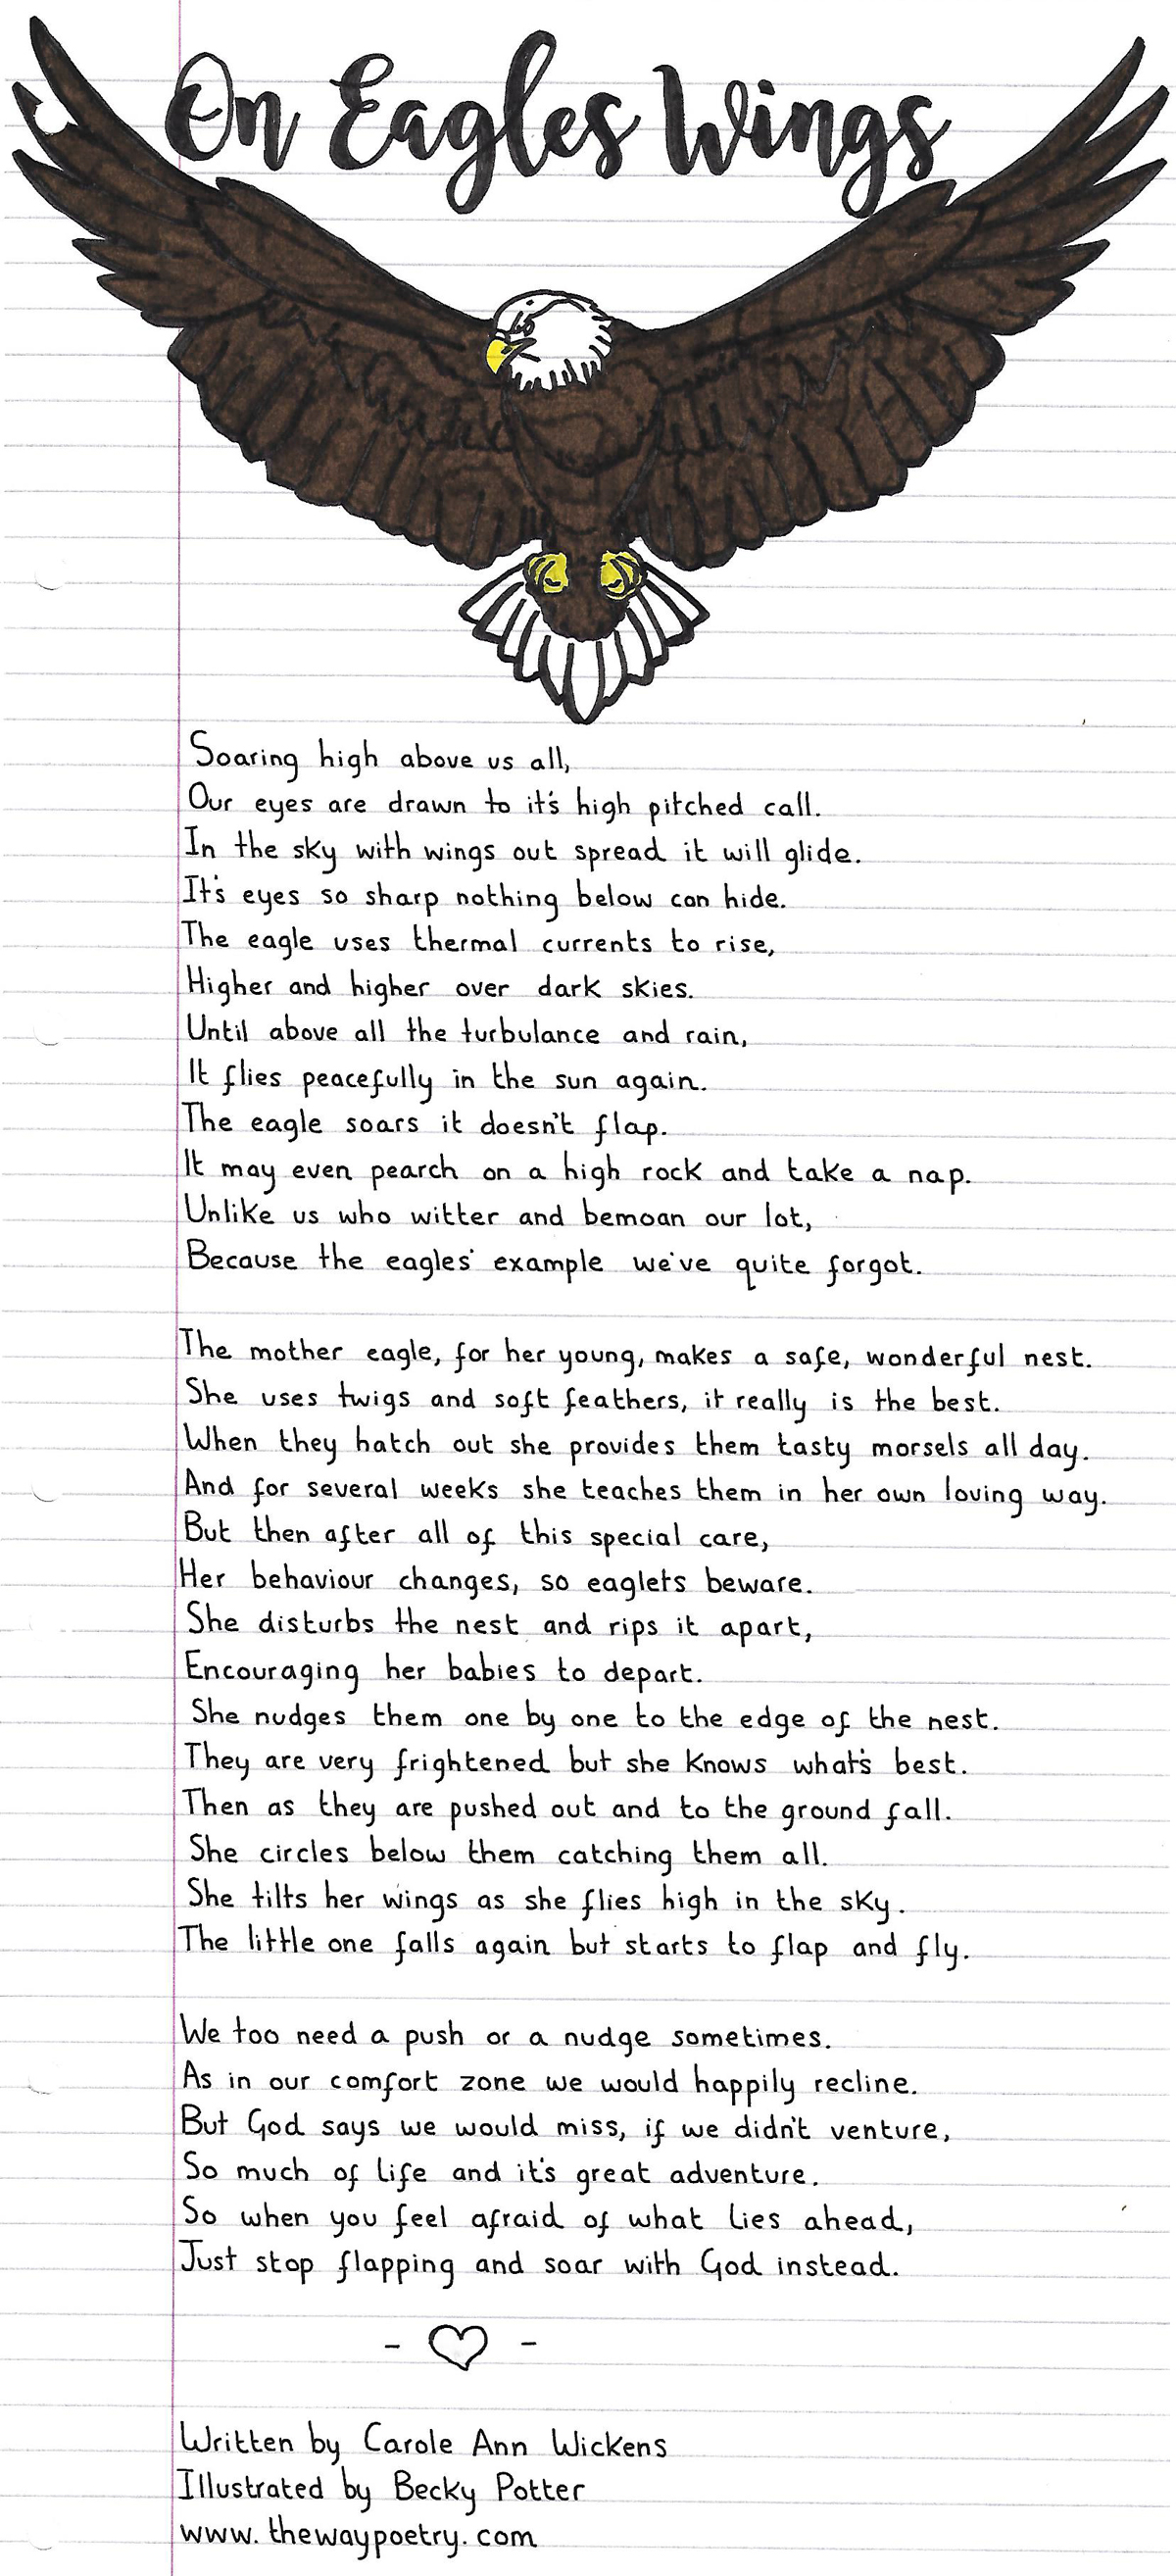 On Eagles Wings by Carole Ann Wickens